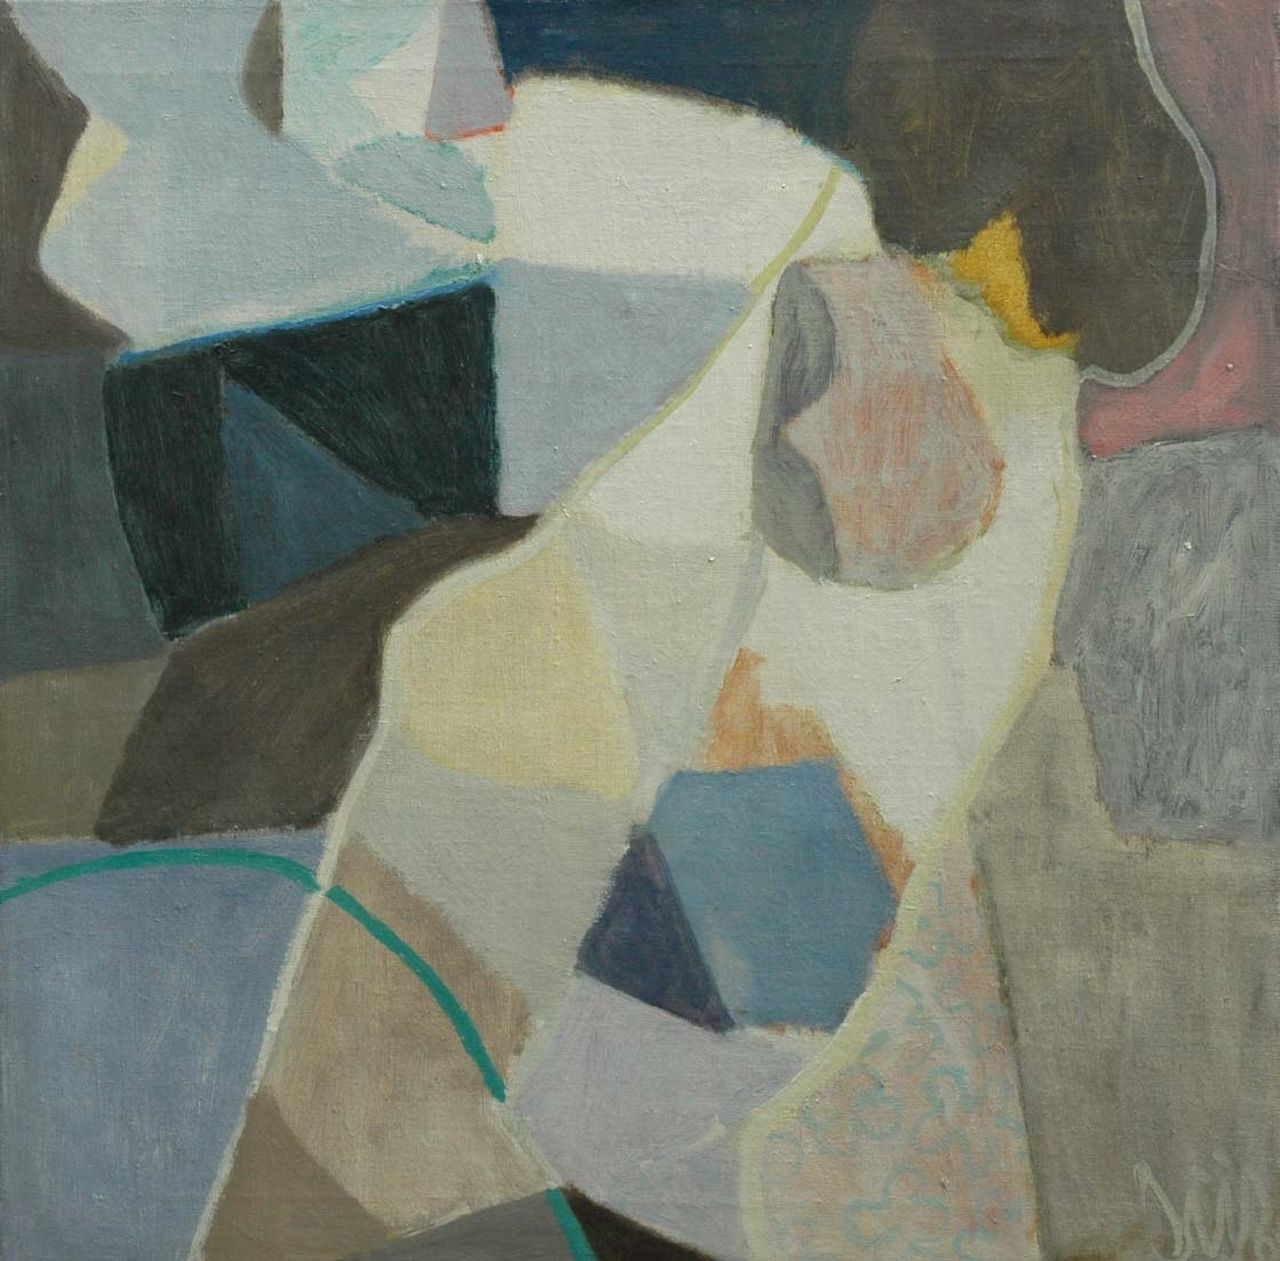 Gijsbers J.H.S.  | Jan Hendrik Steven 'Gijs' Gijsbers, Composition X '68, oil on canvas 62.0 x 62.0 cm, signed l.r. and dated ('68) ?